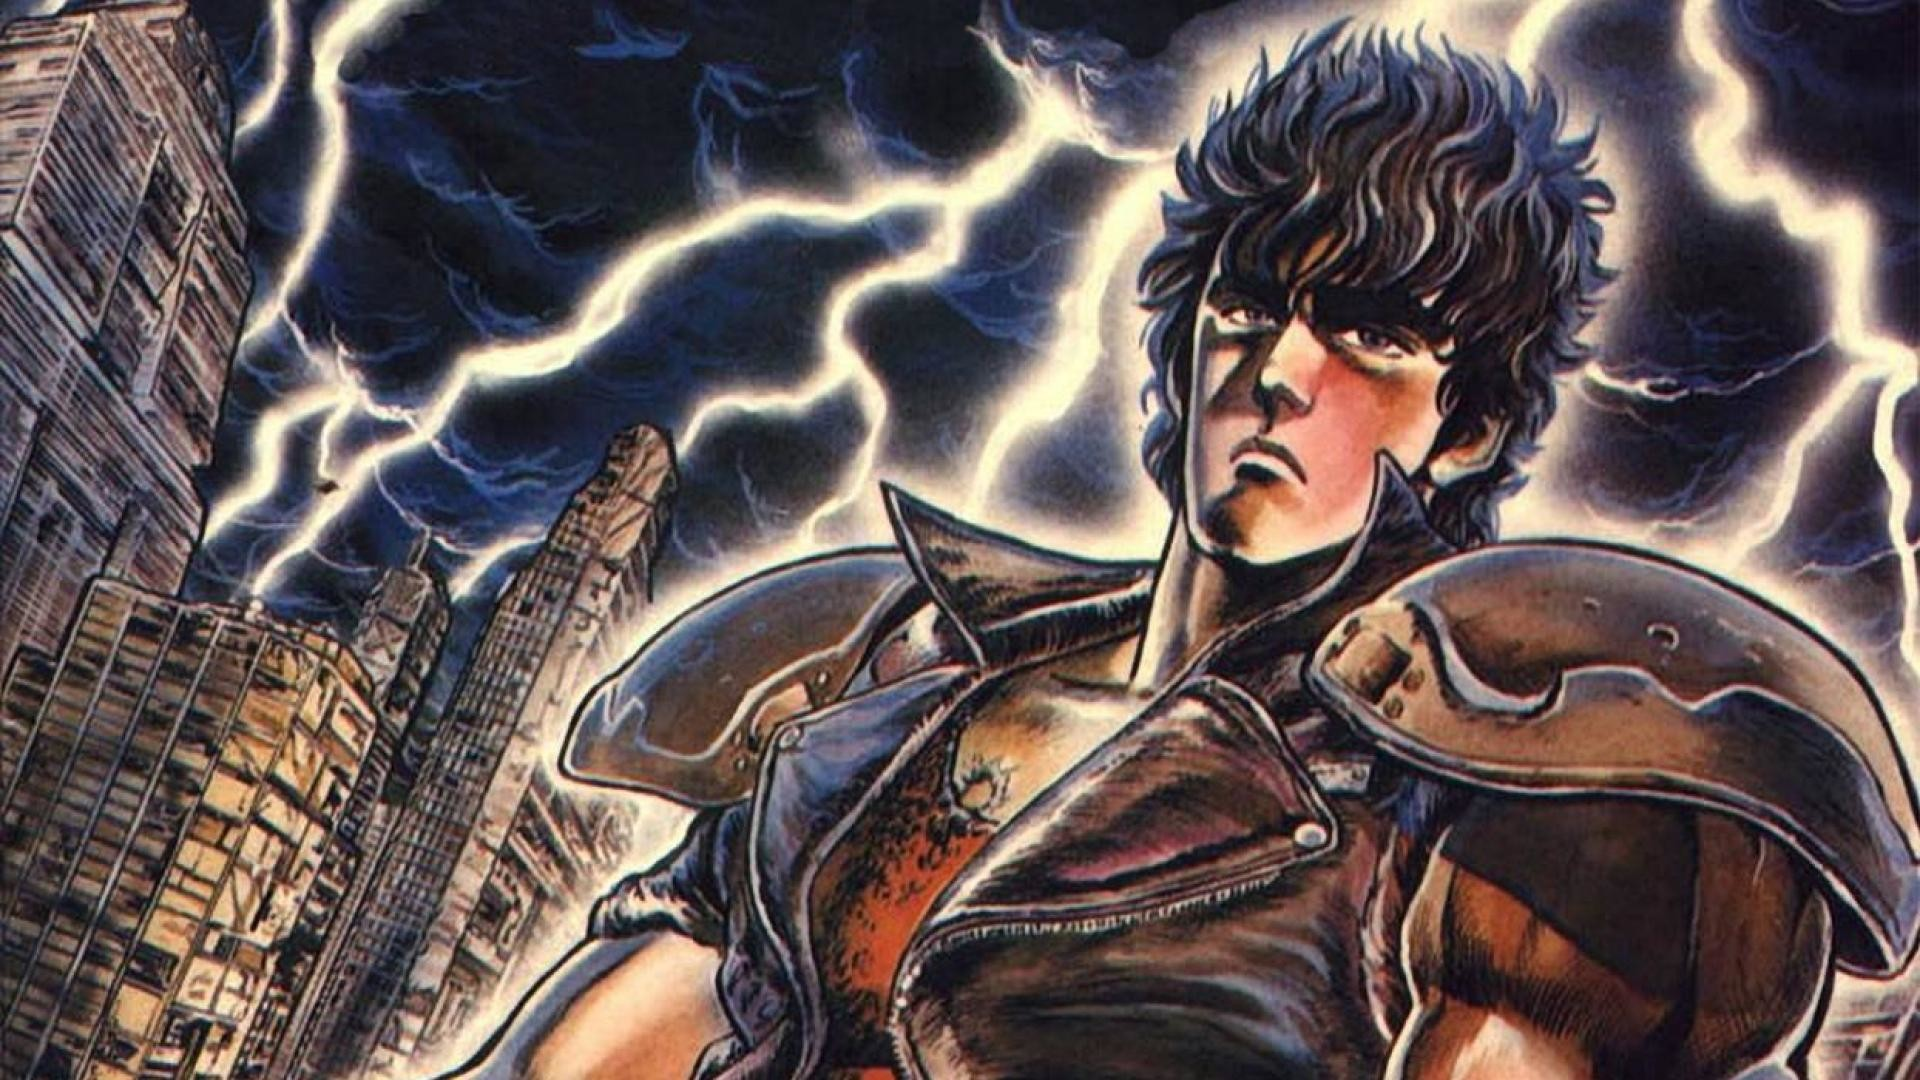 Anime – Fist Of The North Star Kenshiro (Fist Of The North Star) Wallpaper